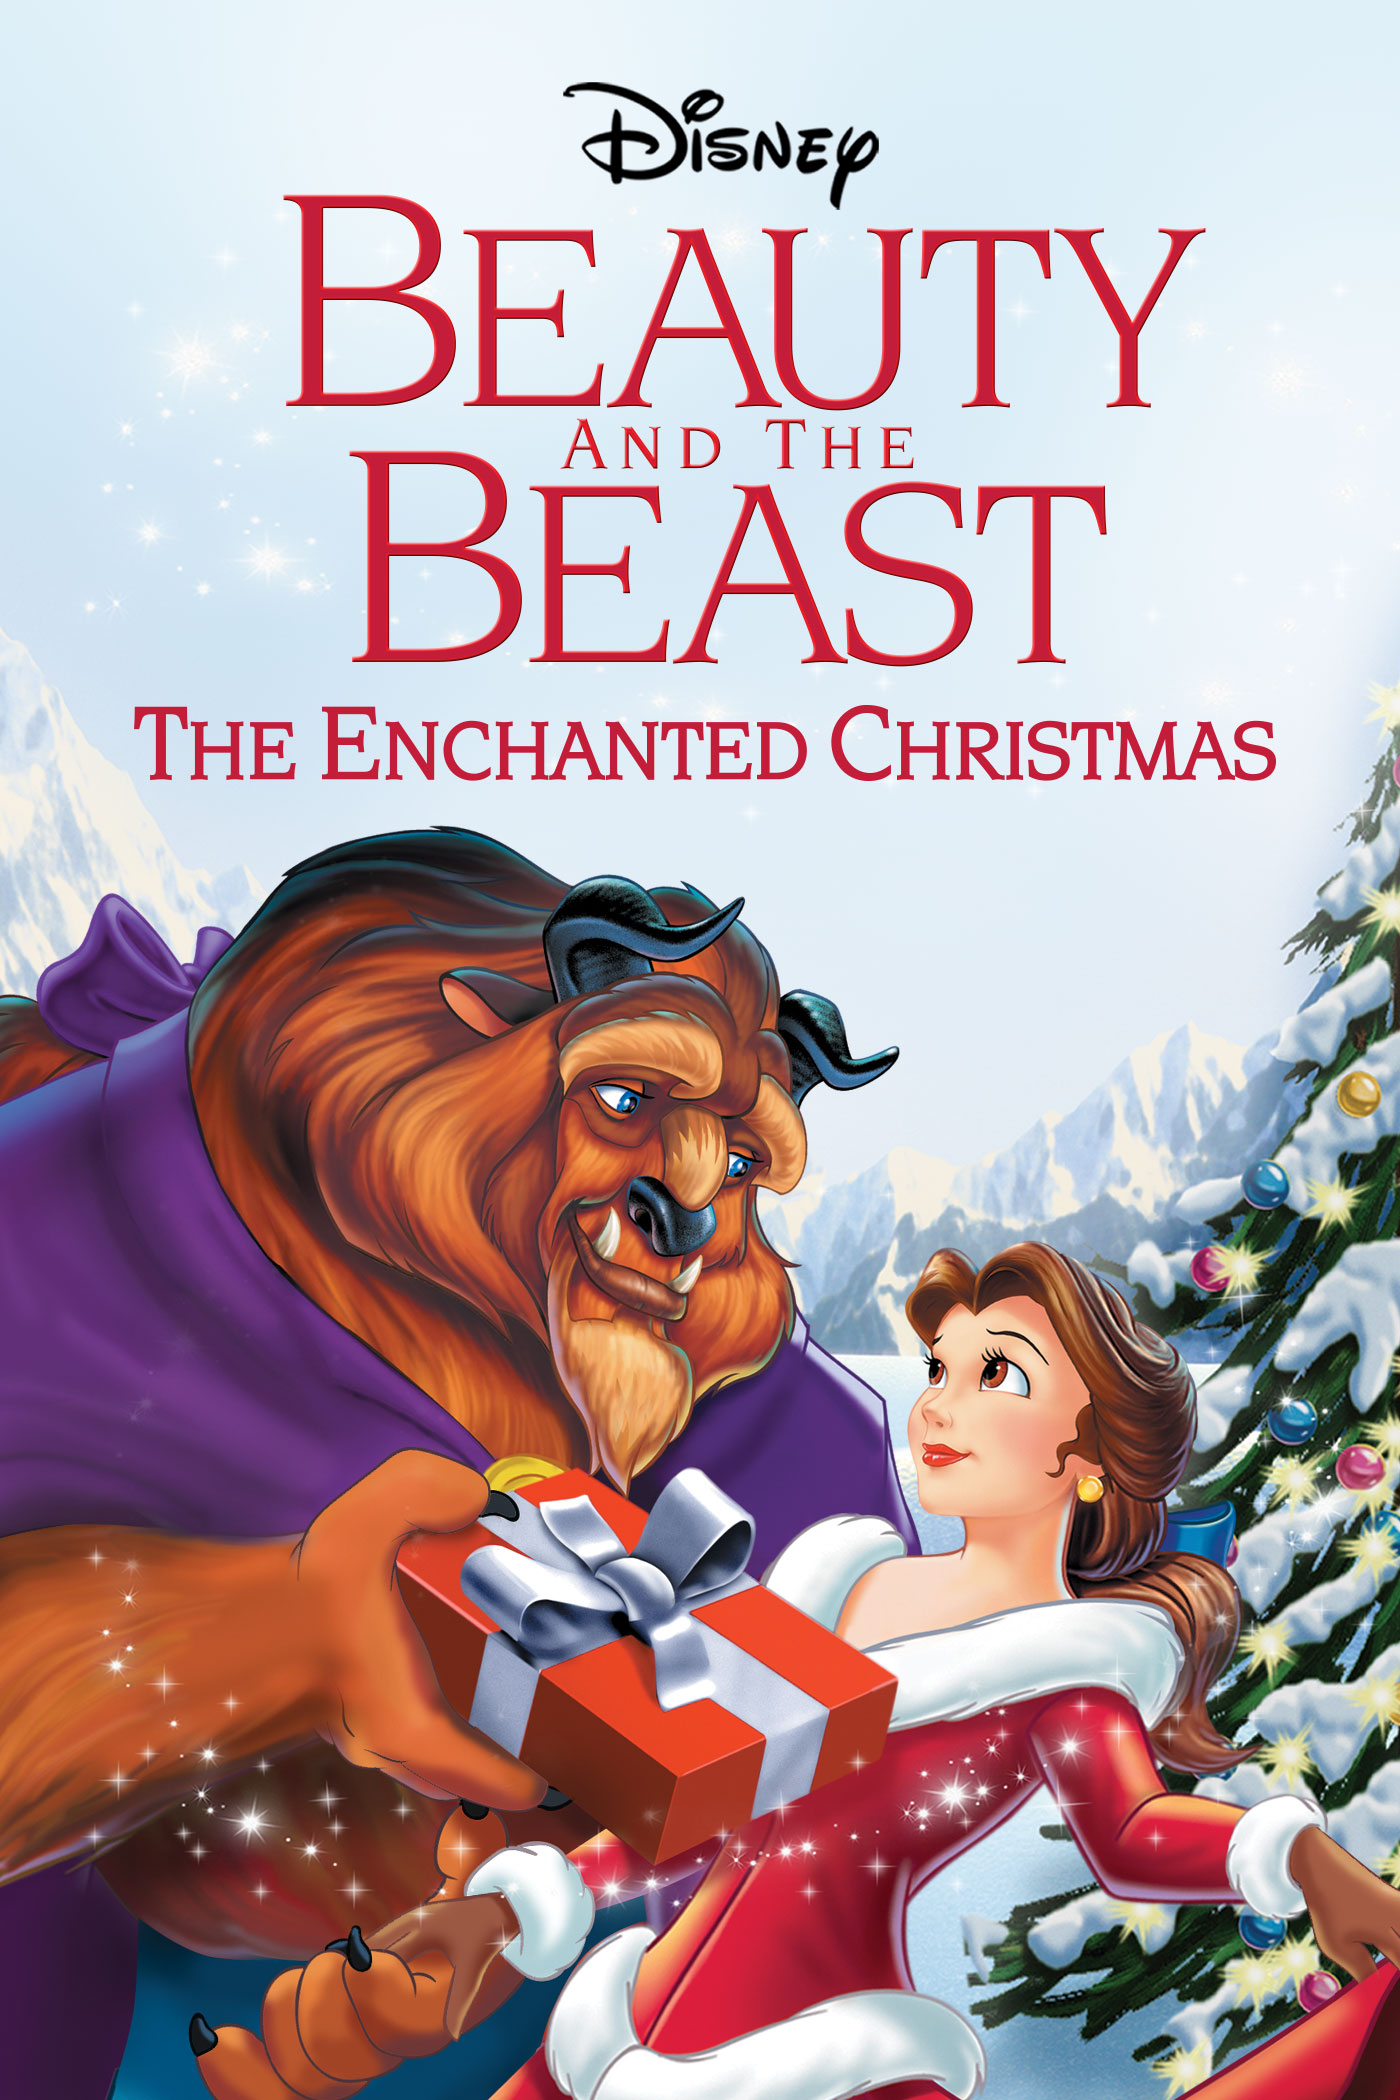 beauty and the beast the enchanted christmas - The Night They Saved Christmas Dvd